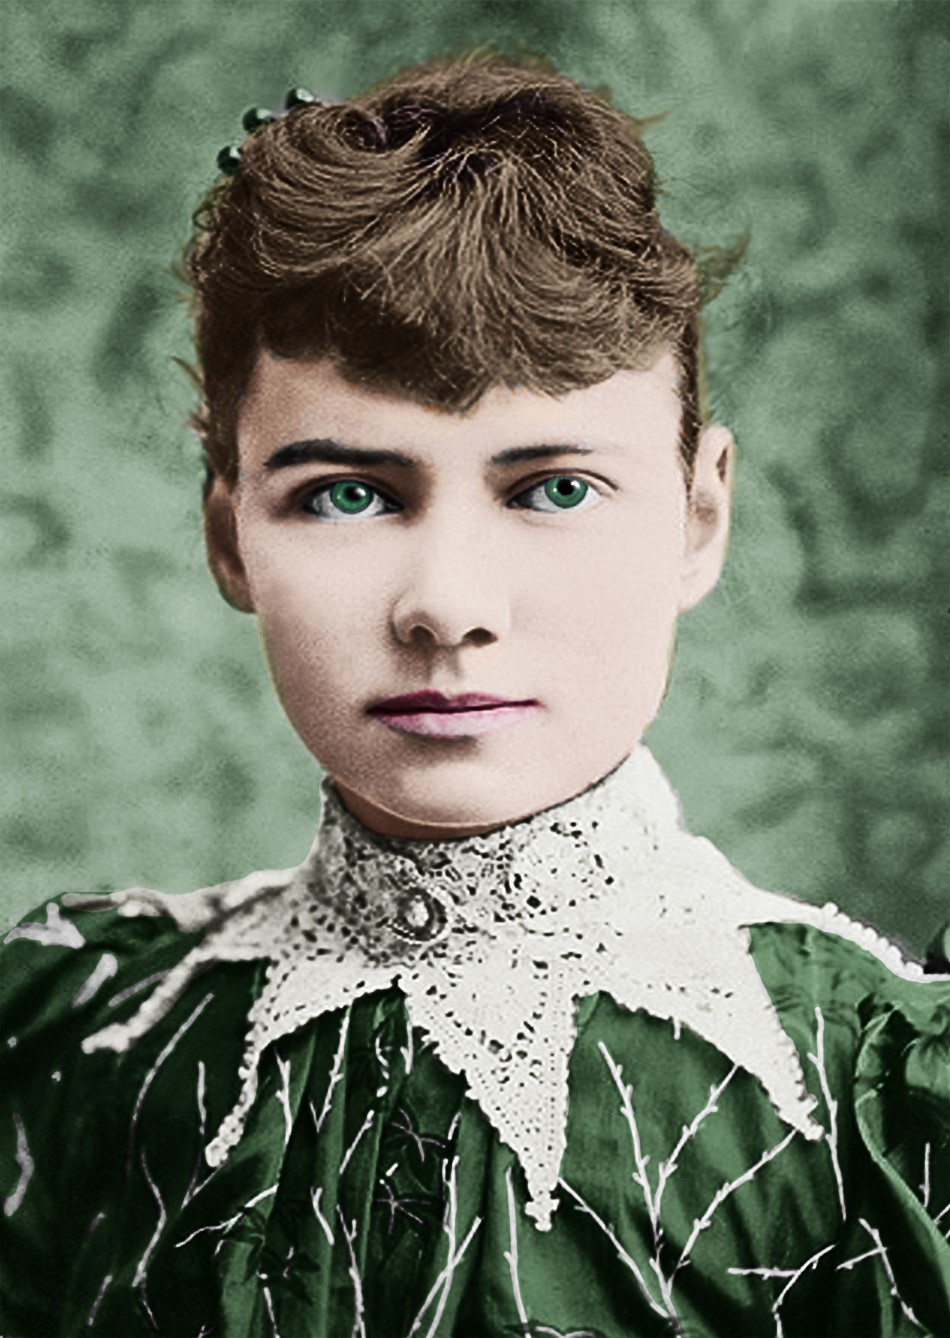 Women's History Month: Girl reporter Nellie Bly changed the face of journalism and made major strides for women's rights